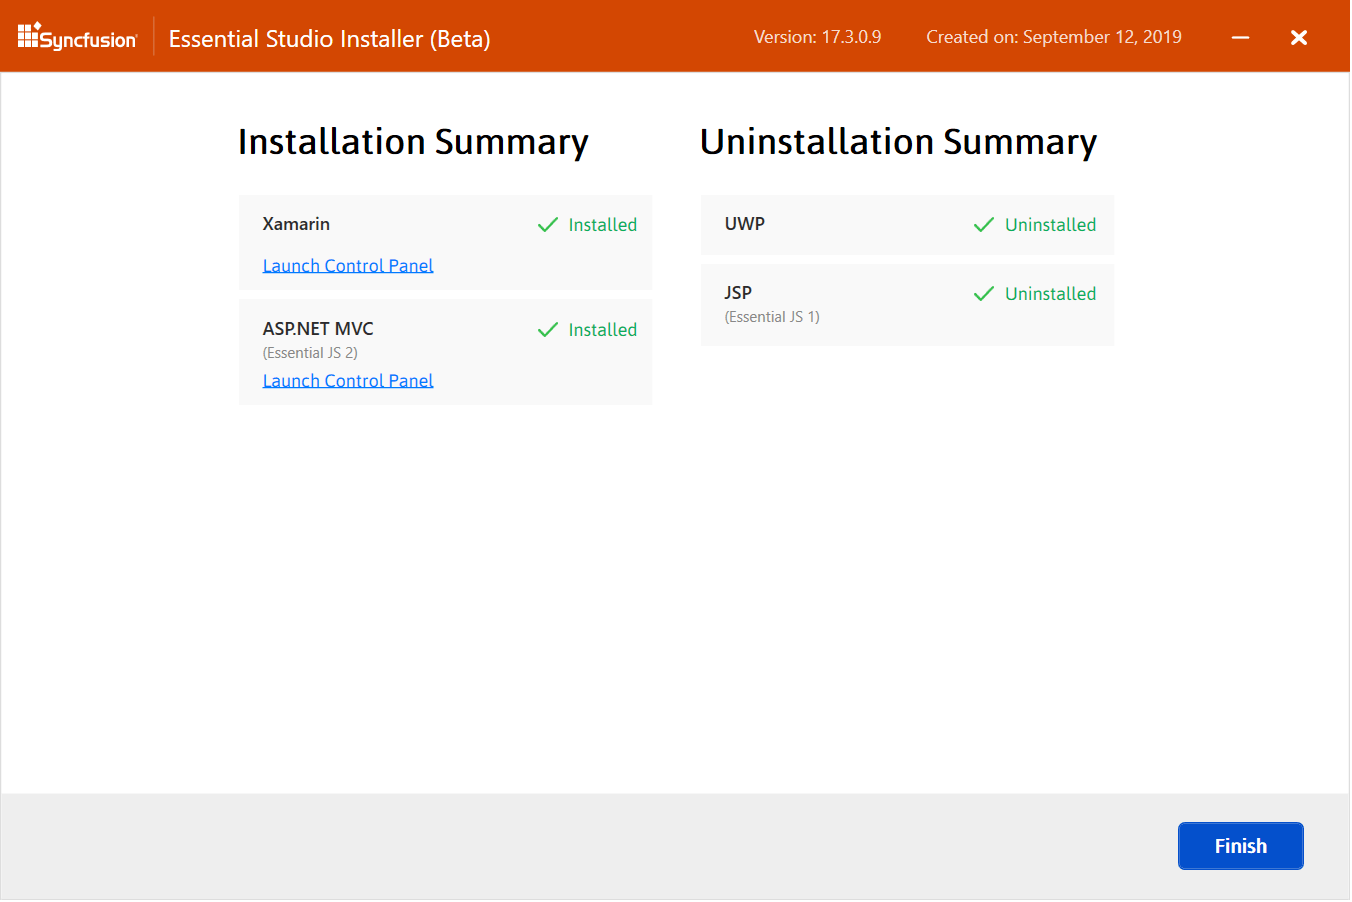 Installing and Uninstalling Platforms in One Step using Web Installer